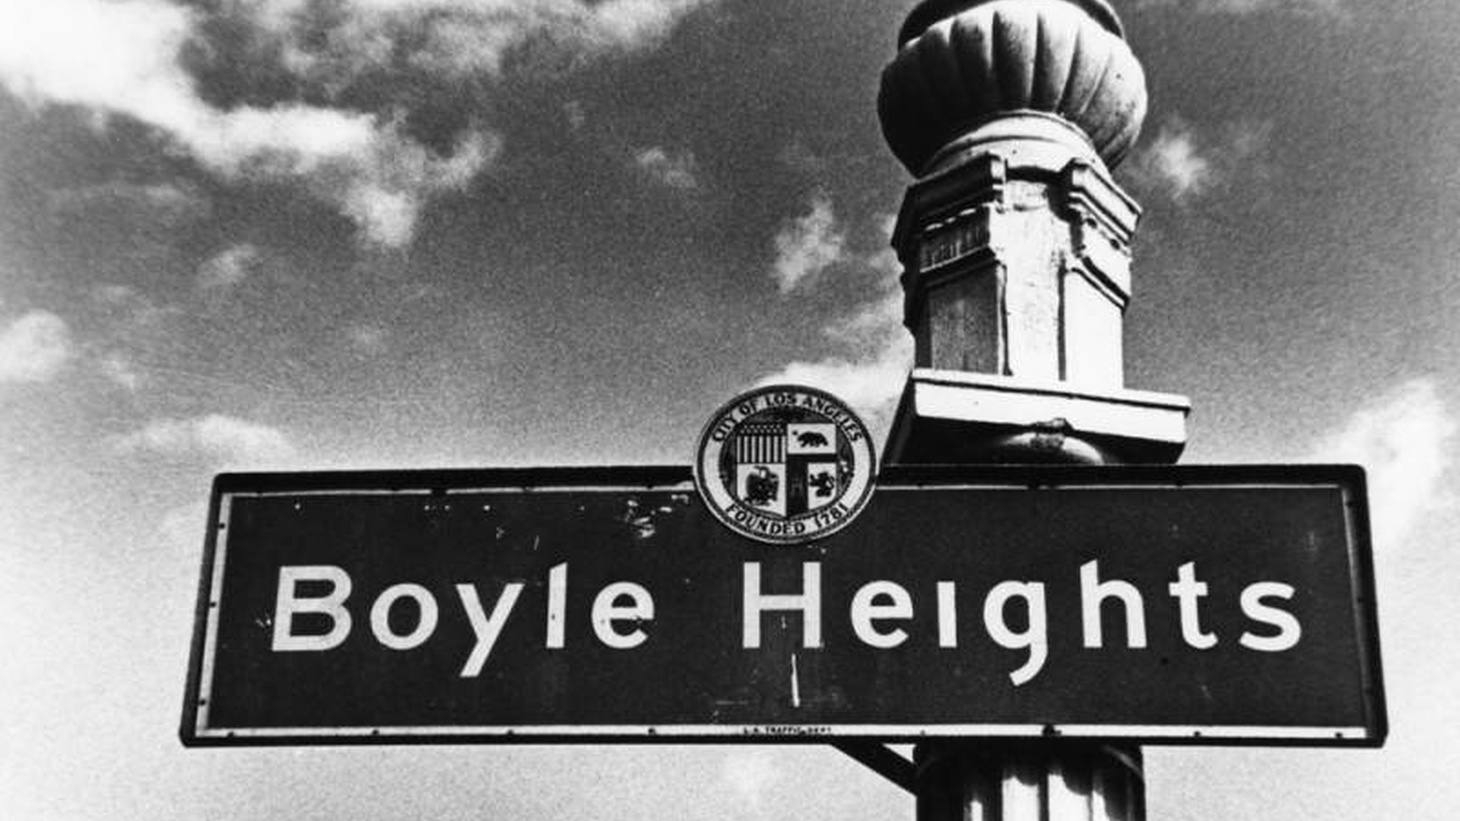 A Boyle Heights street sign is seen circa 1980.